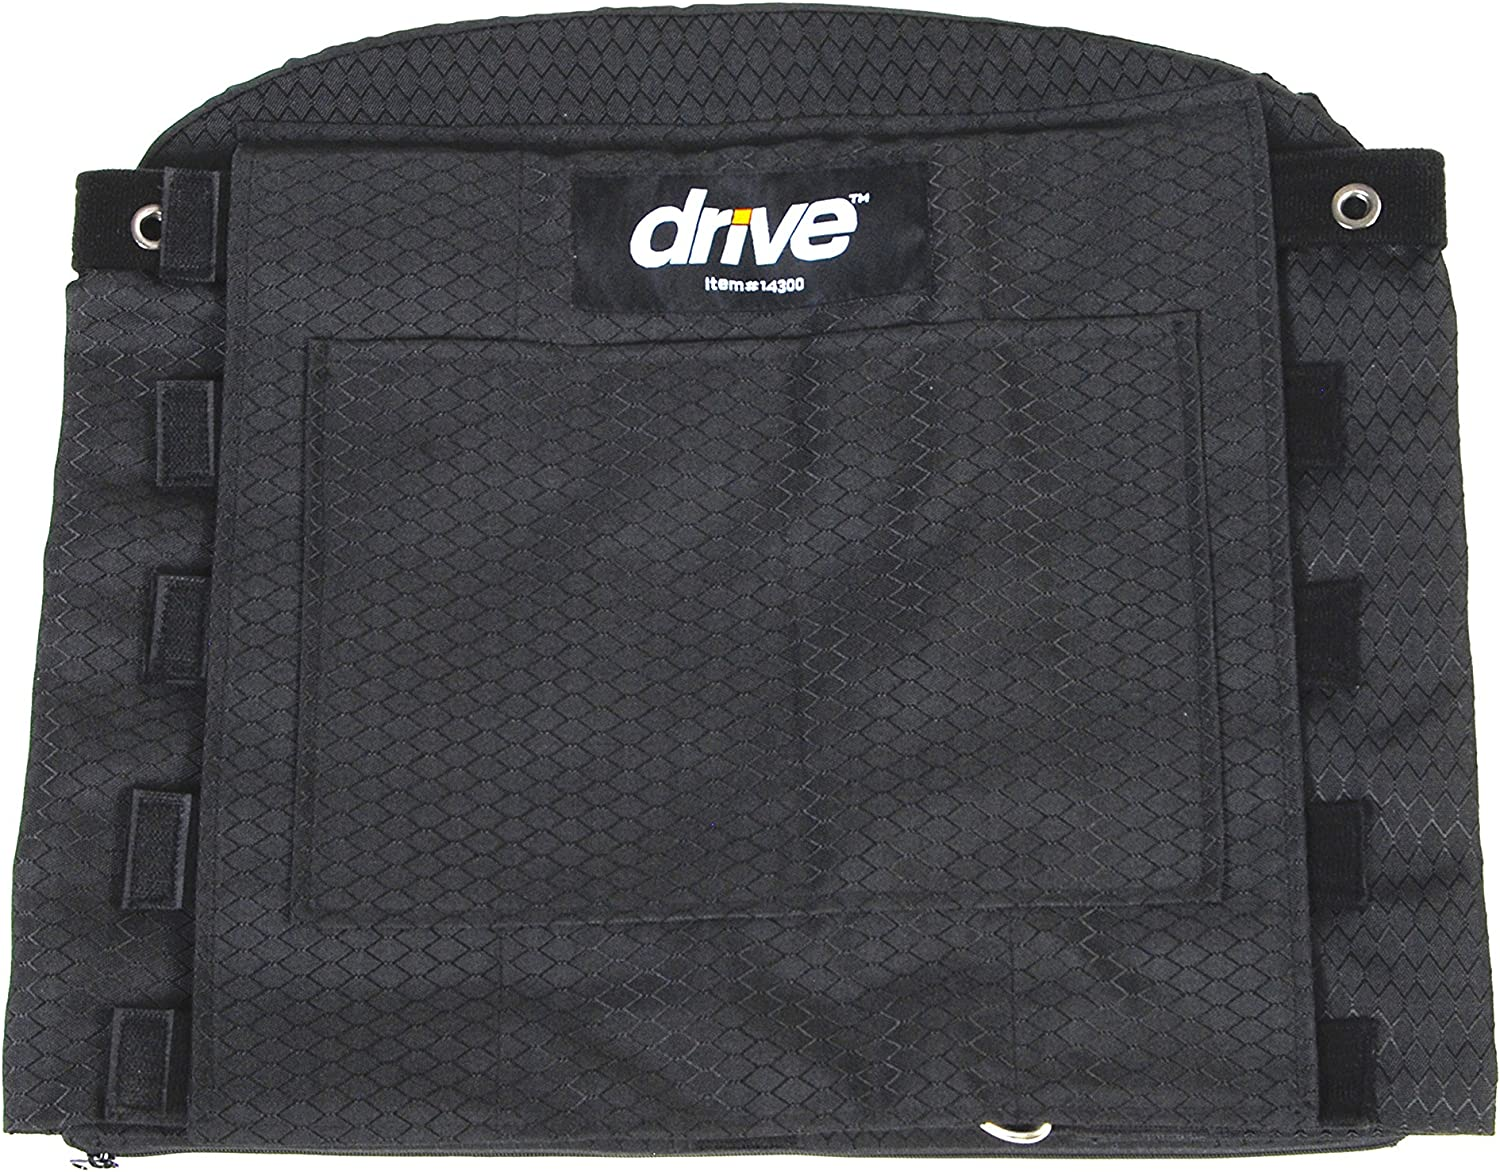 Drive Medical Adjustable Tension Back Cushions, Black 91uYVfL6ETL